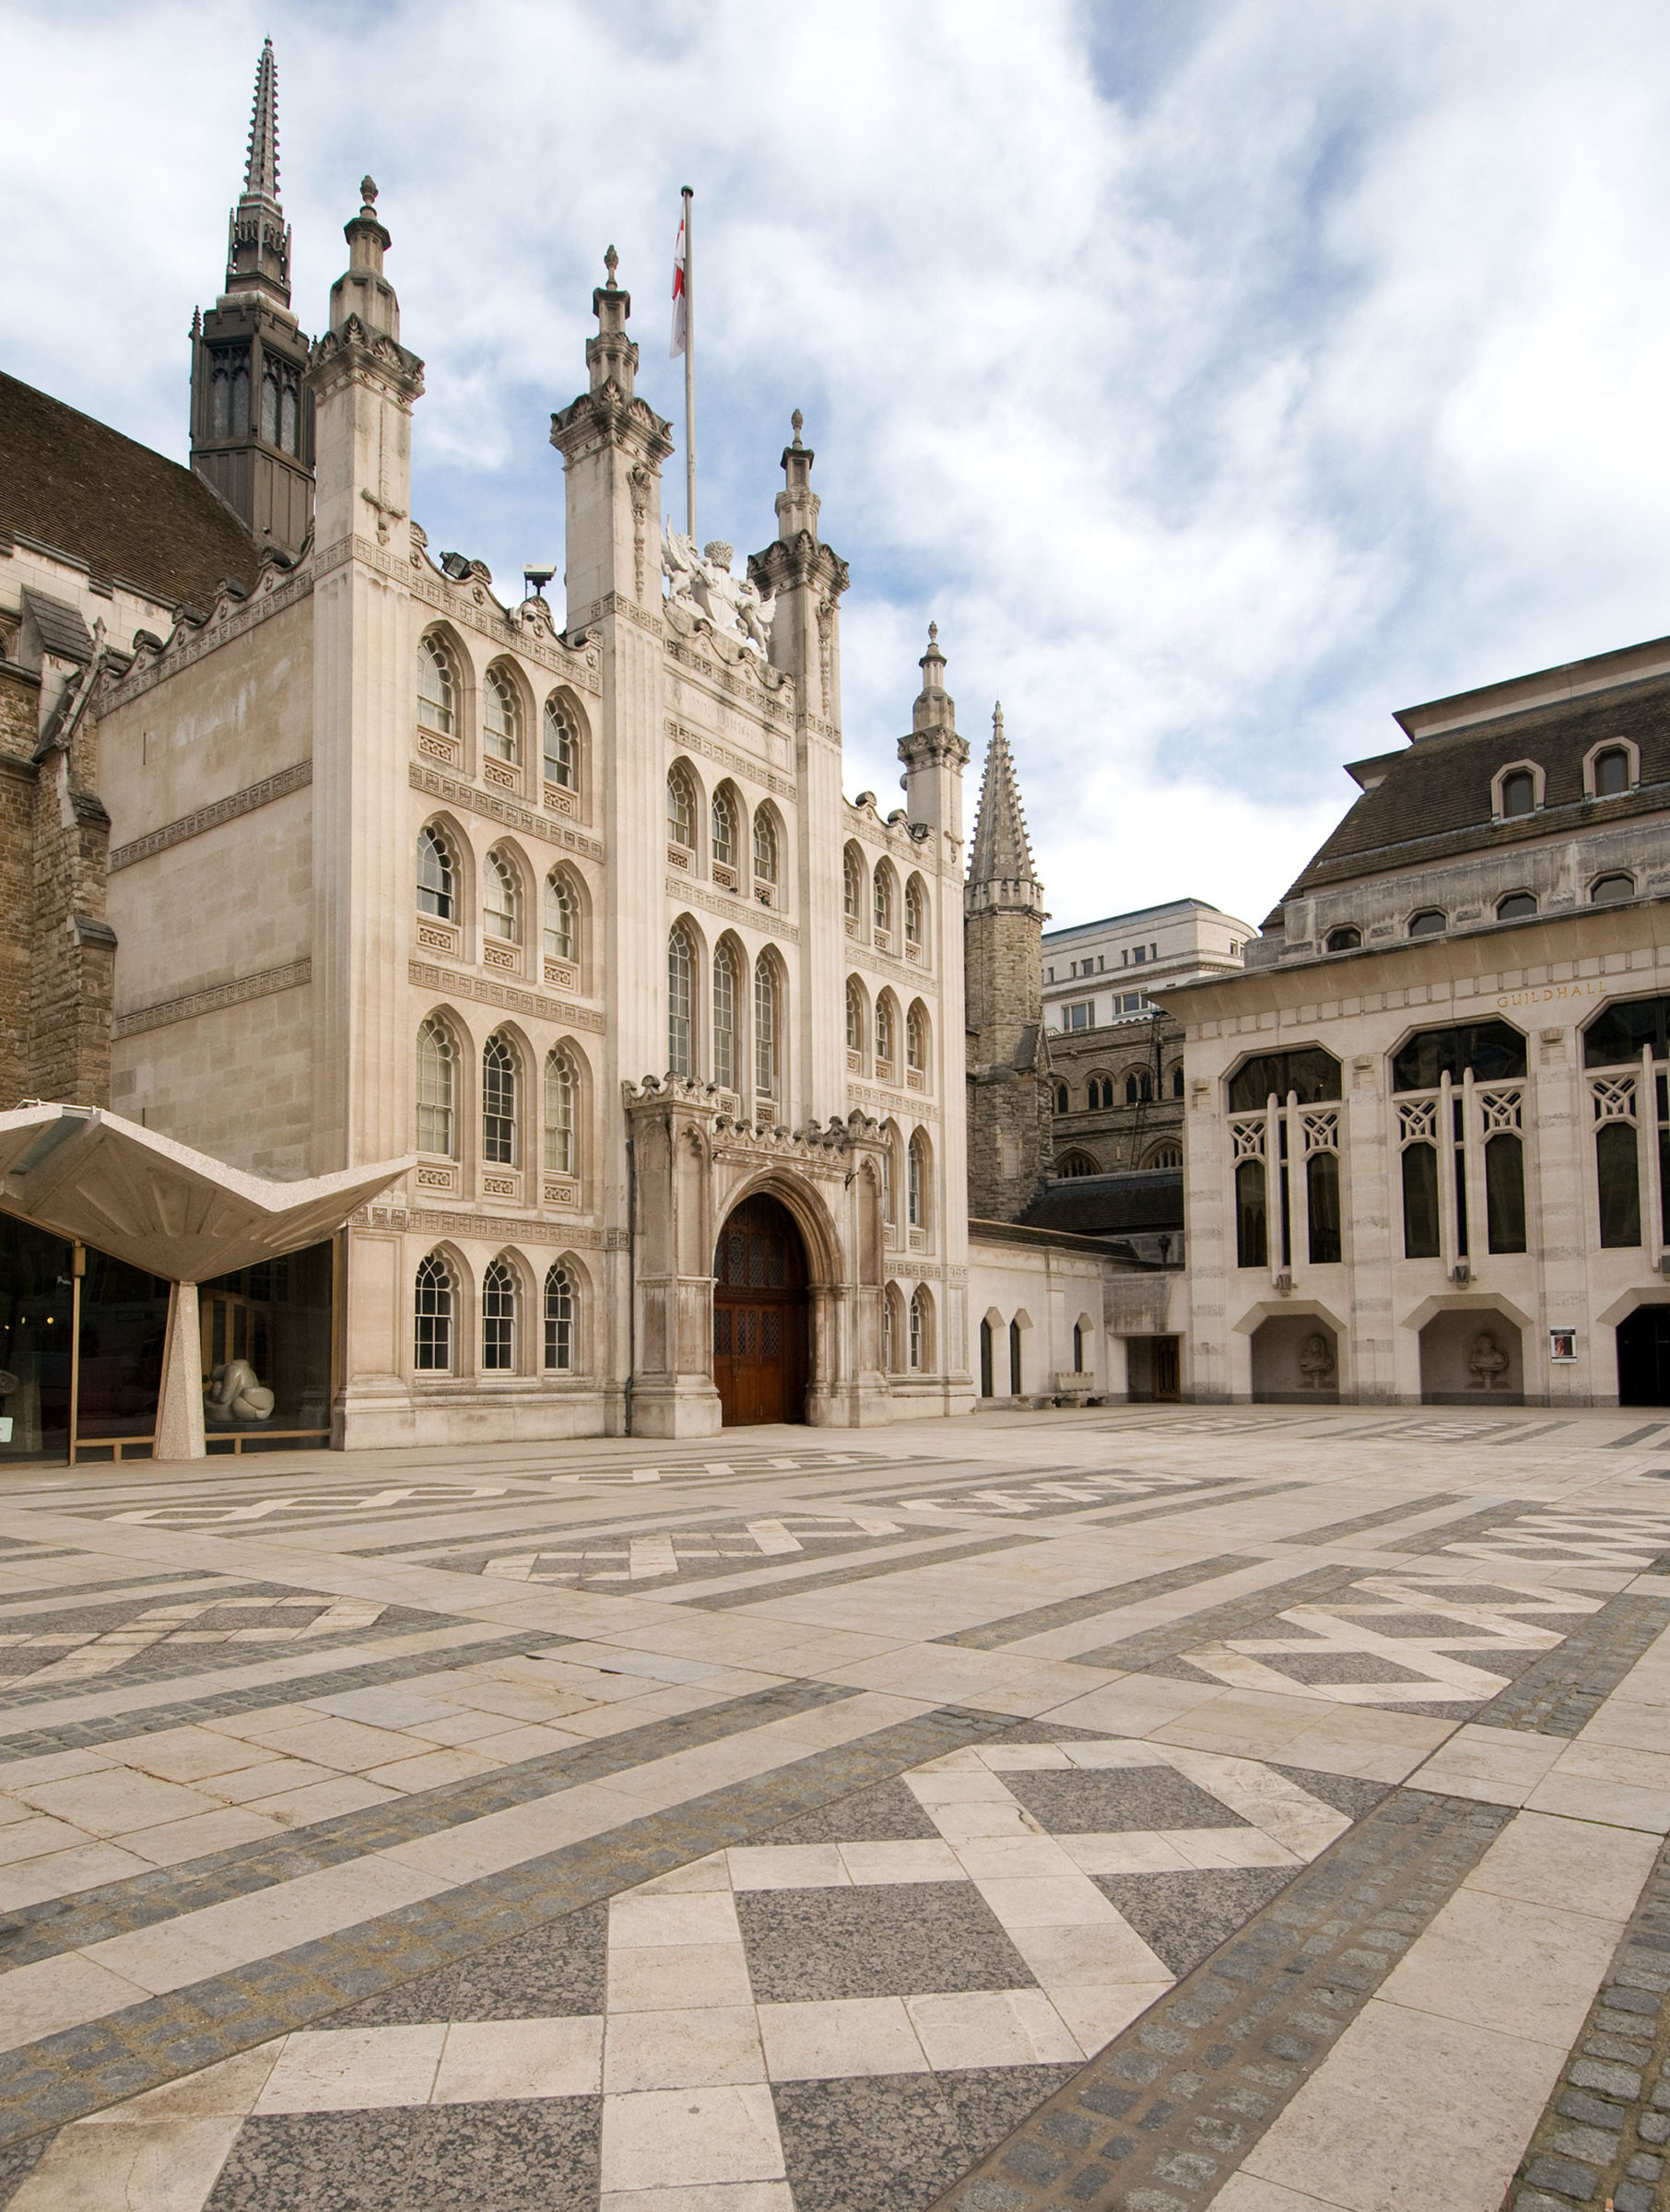 The London Guildhall